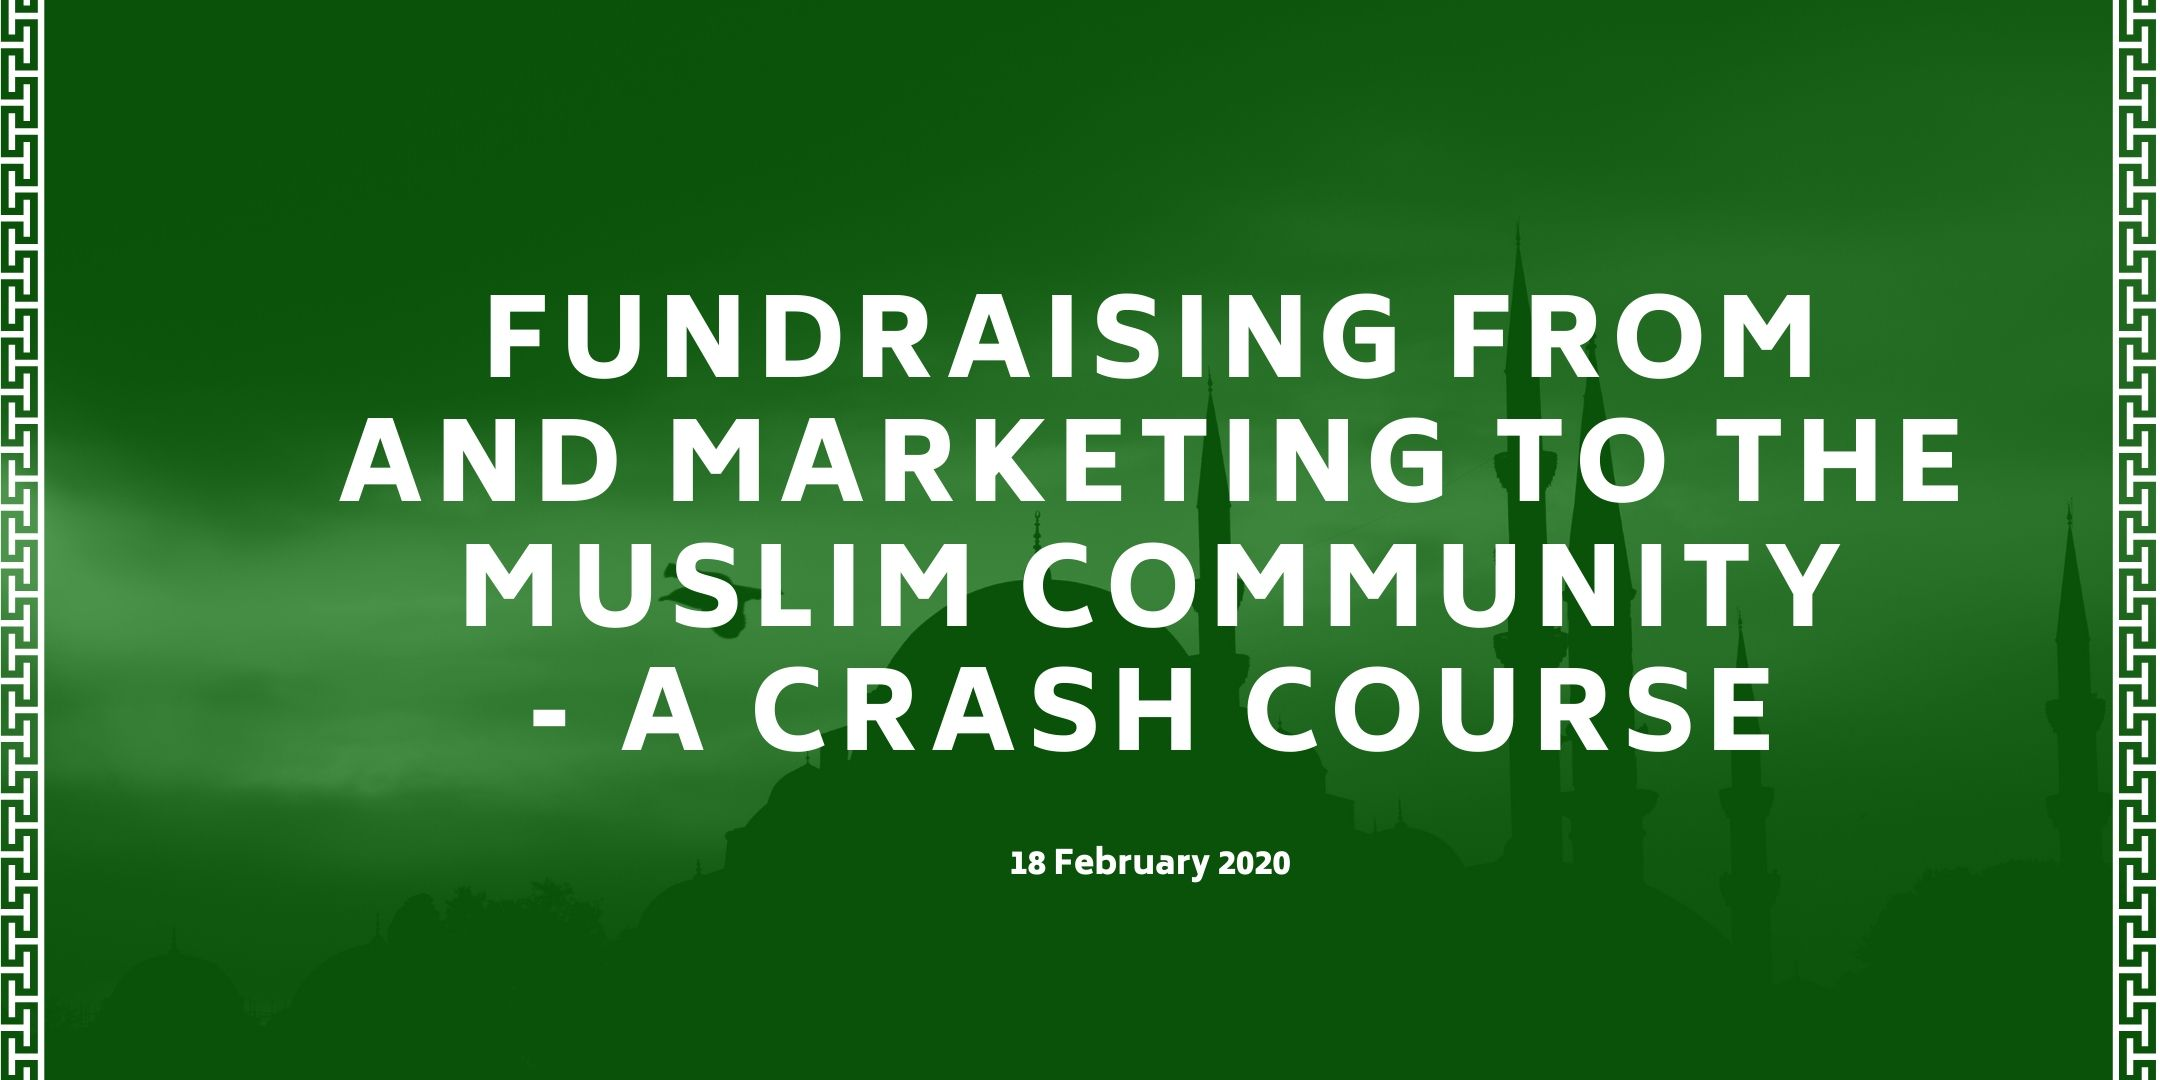 Fundraising from and marketing to the Muslim Community - course details